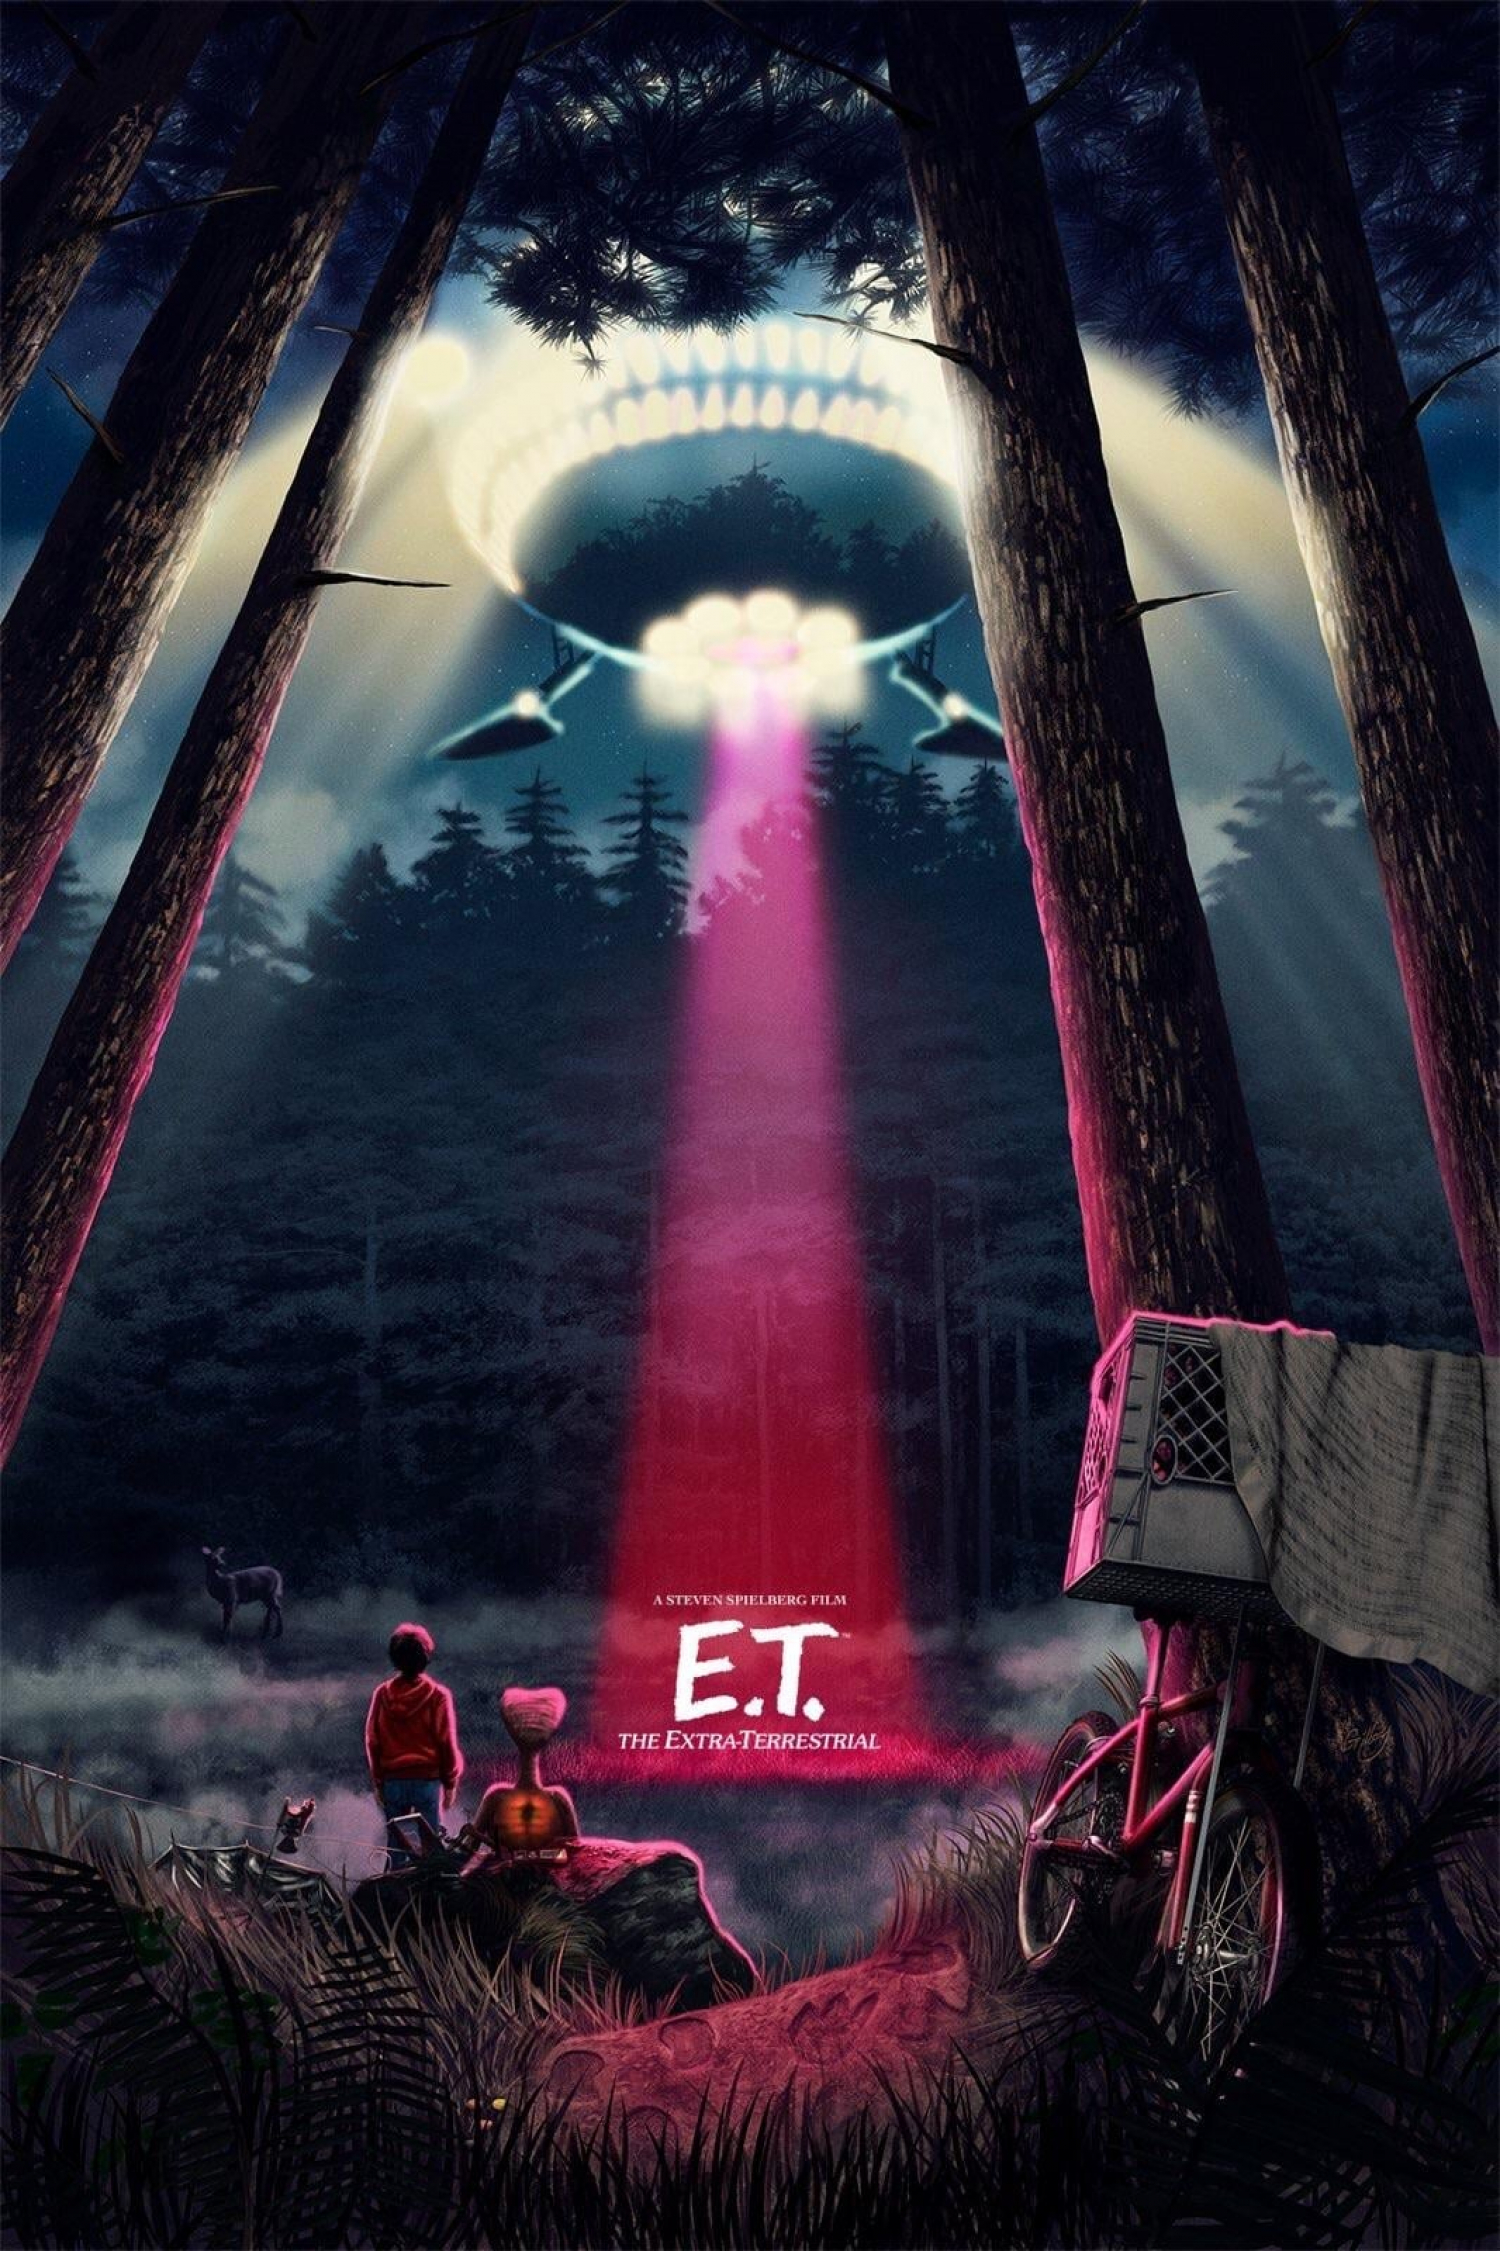 E.T. The Extra-Terrestrial on iTunes